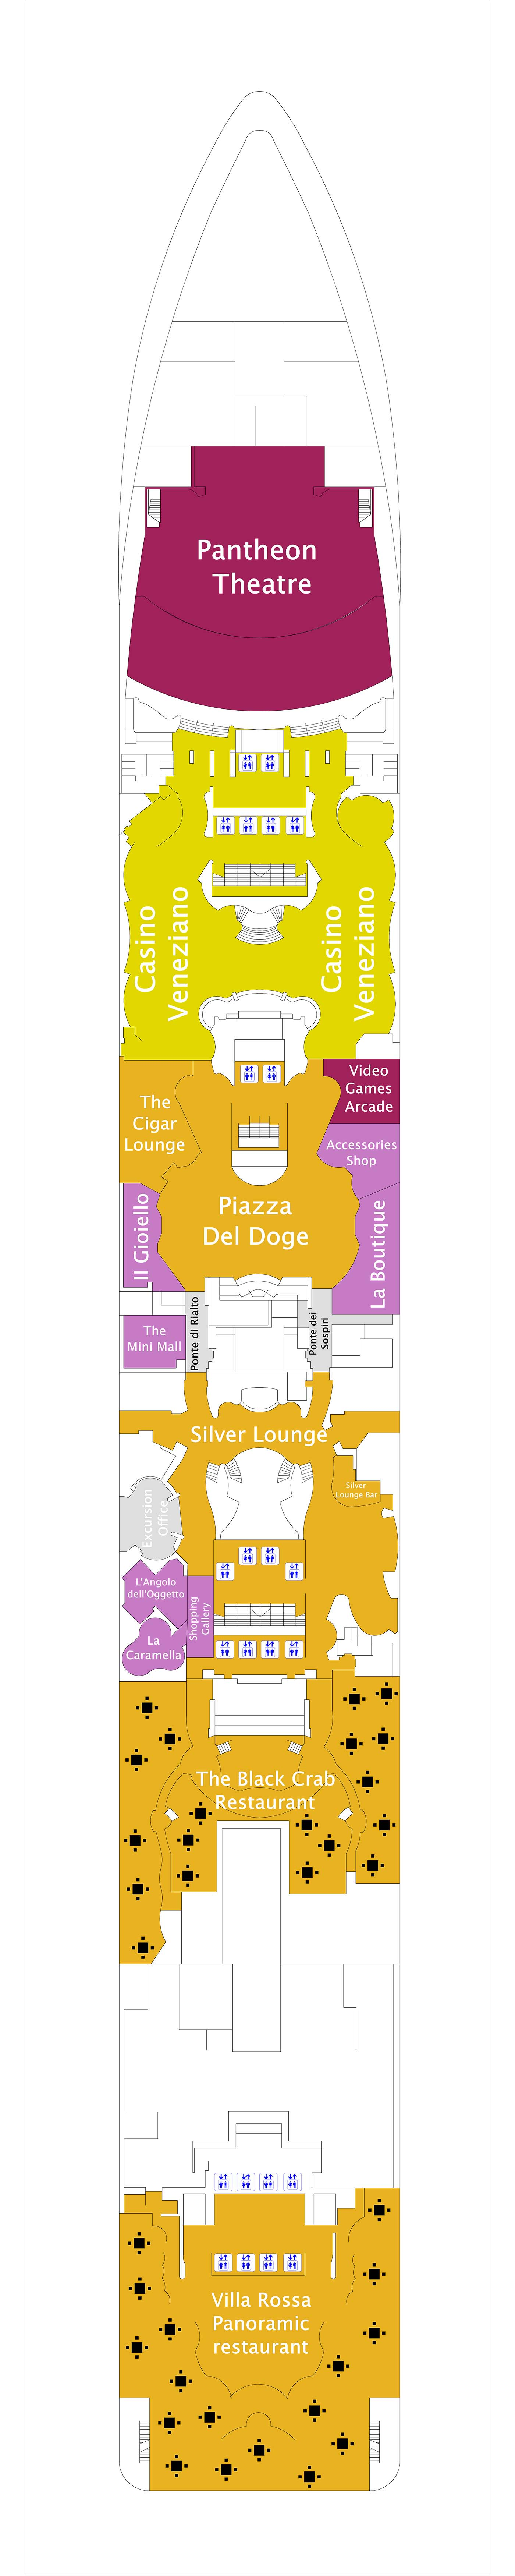 MSC Divina deck plan 6